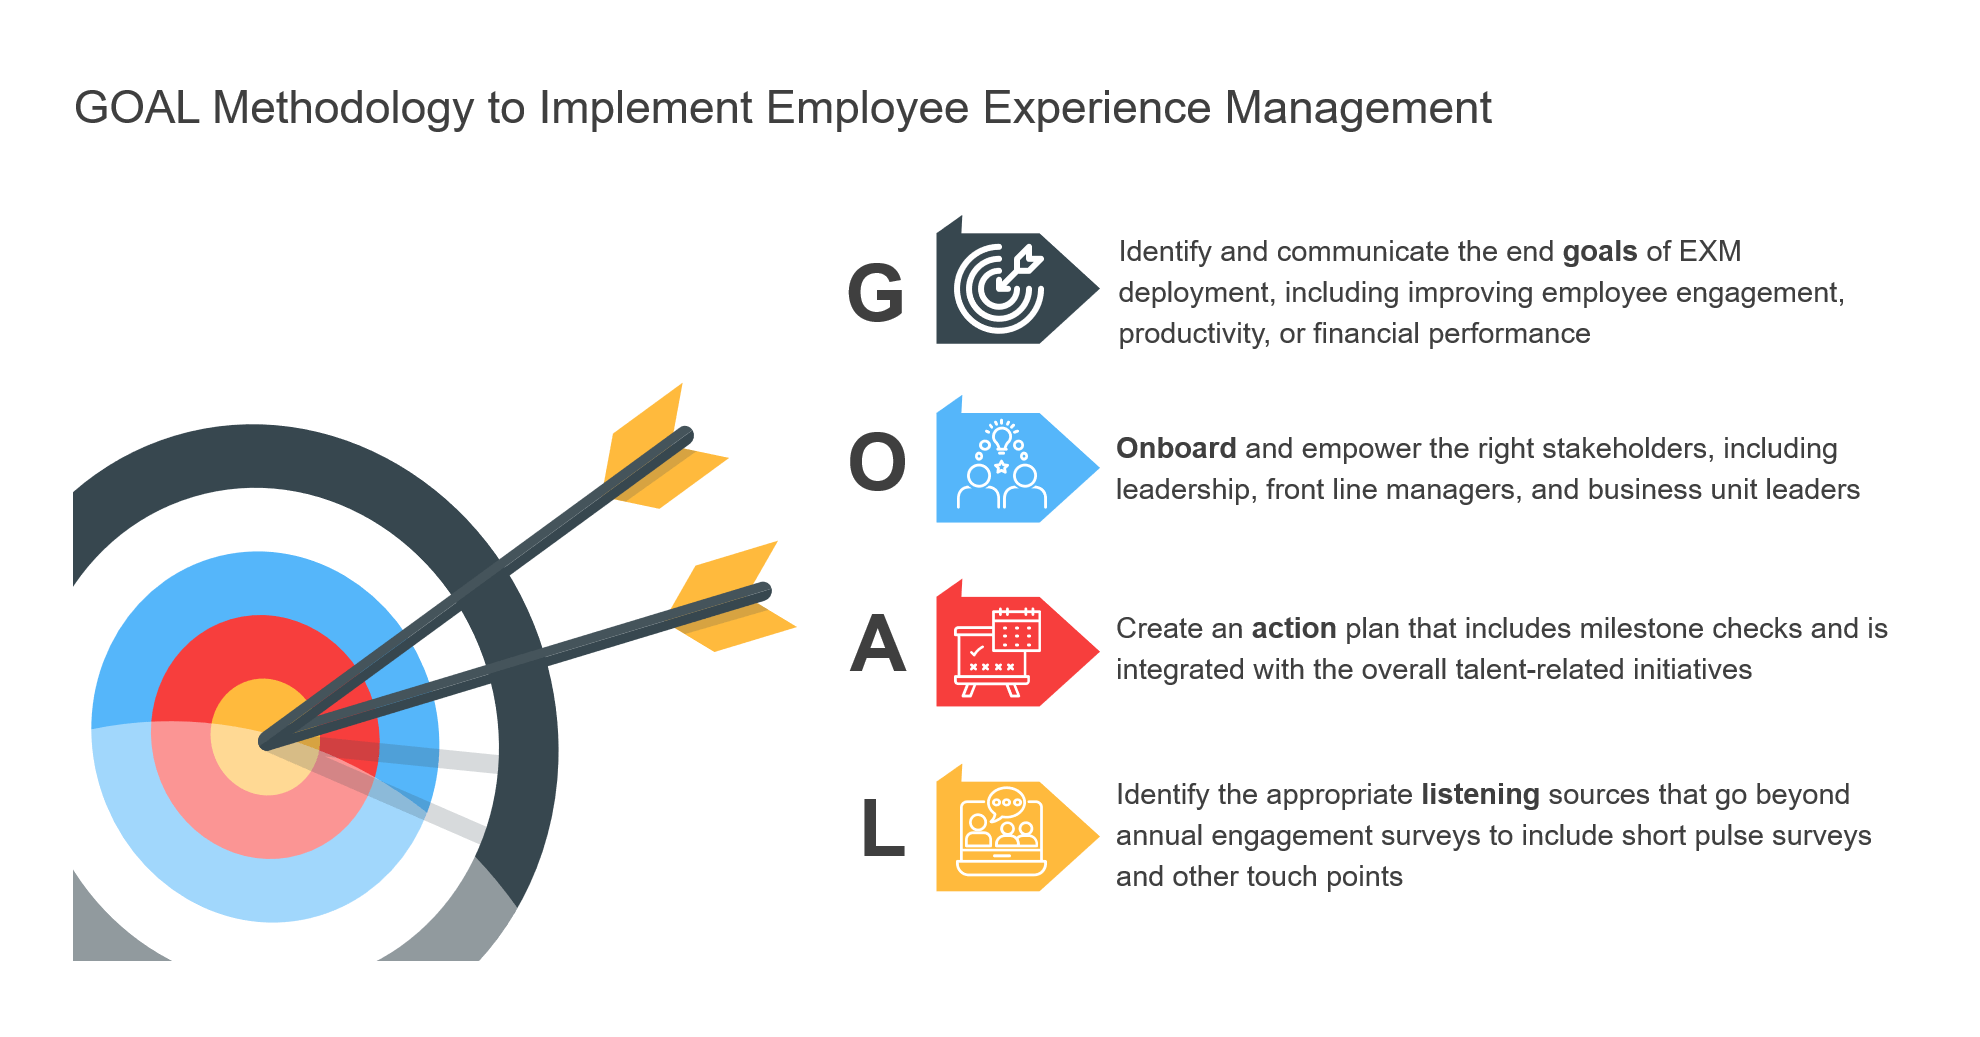 GOAL Methodology to Implement Employee Experience Management (2)